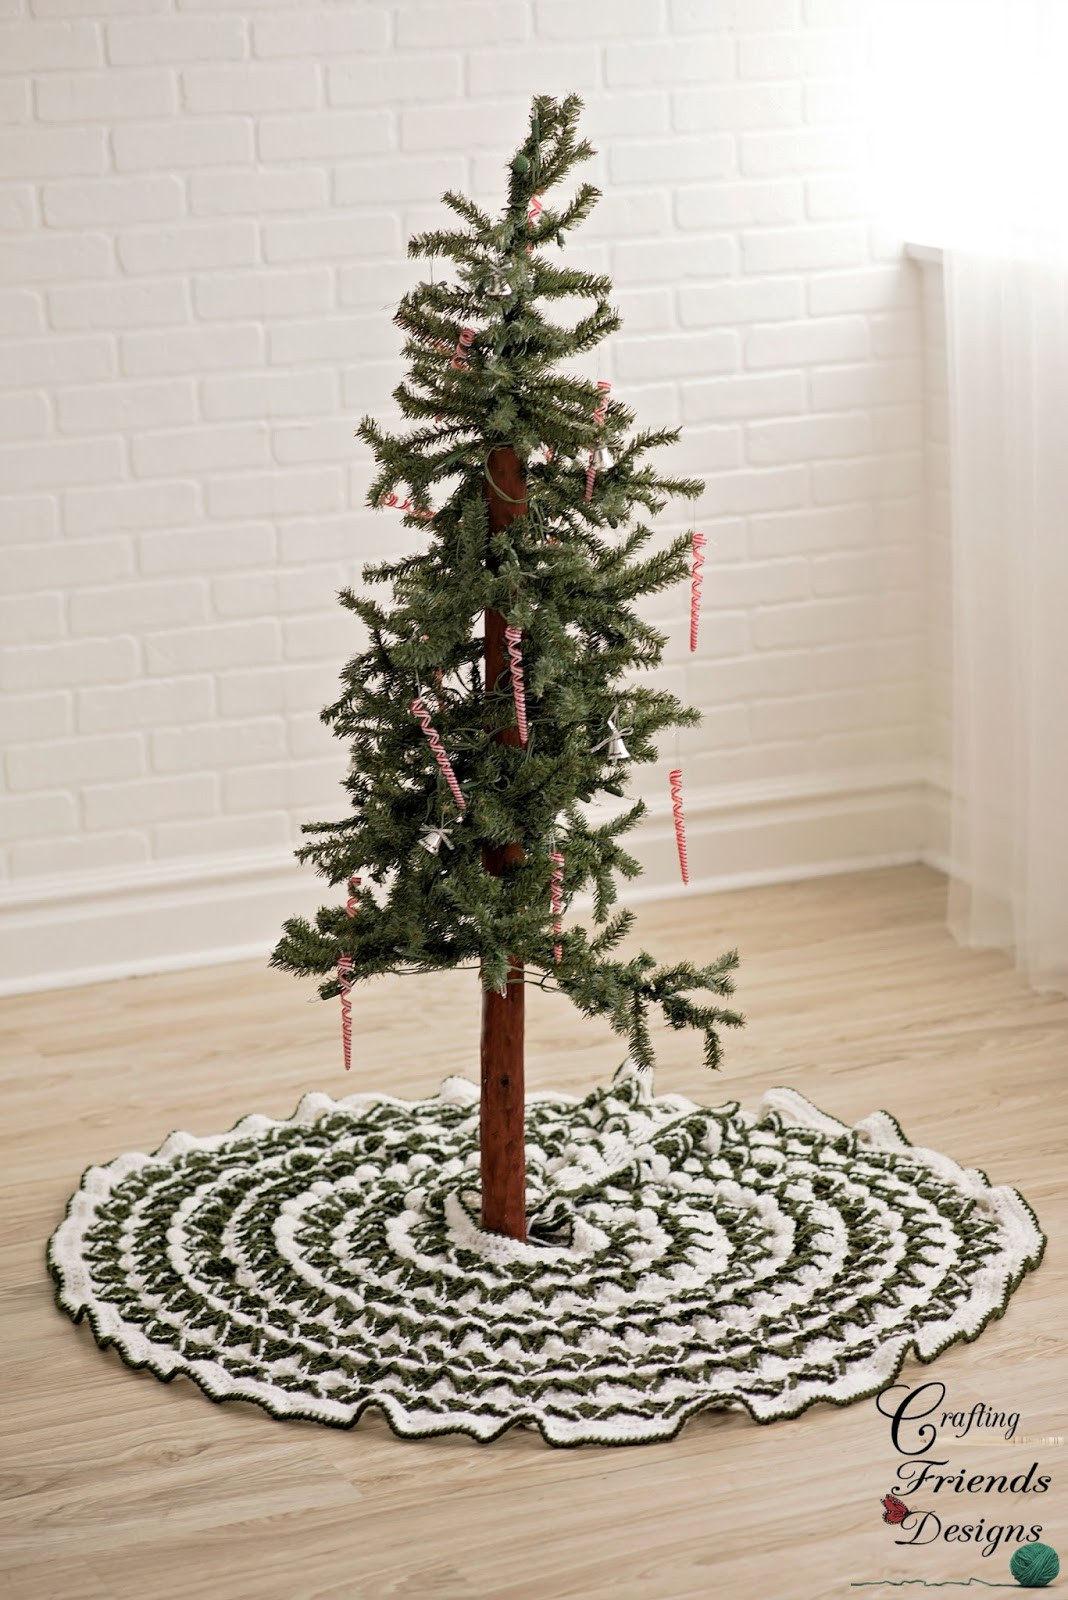 Fresh Crafting Friends Designs Christmas Pine Tree Skirt Free Crochet Tree Skirt Of Innovative 45 Ideas Crochet Tree Skirt